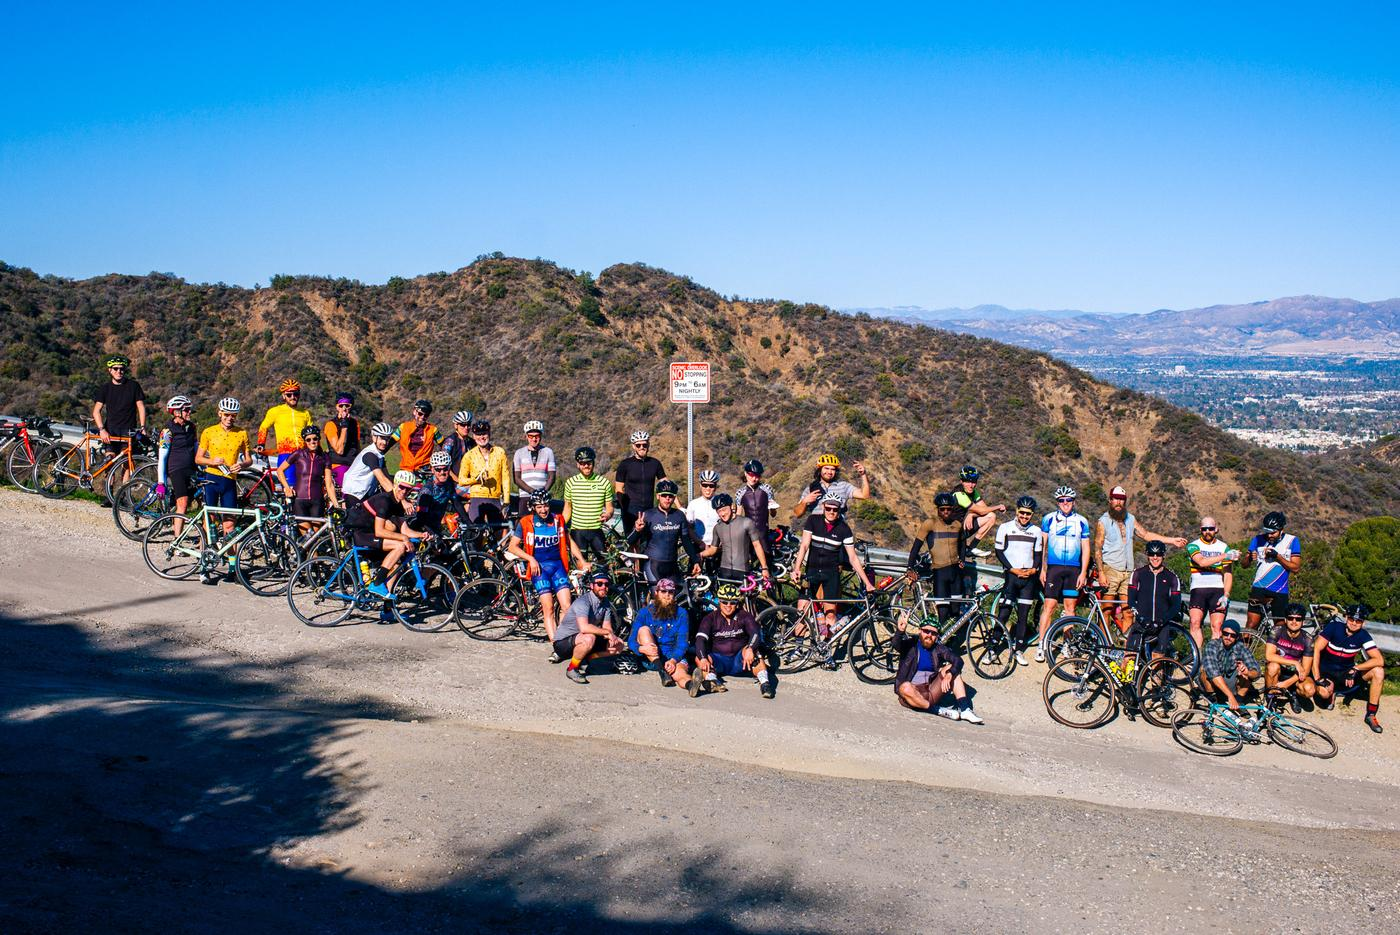 Riding in the Santa Monica Mountains with Golden Saddle and Rapha